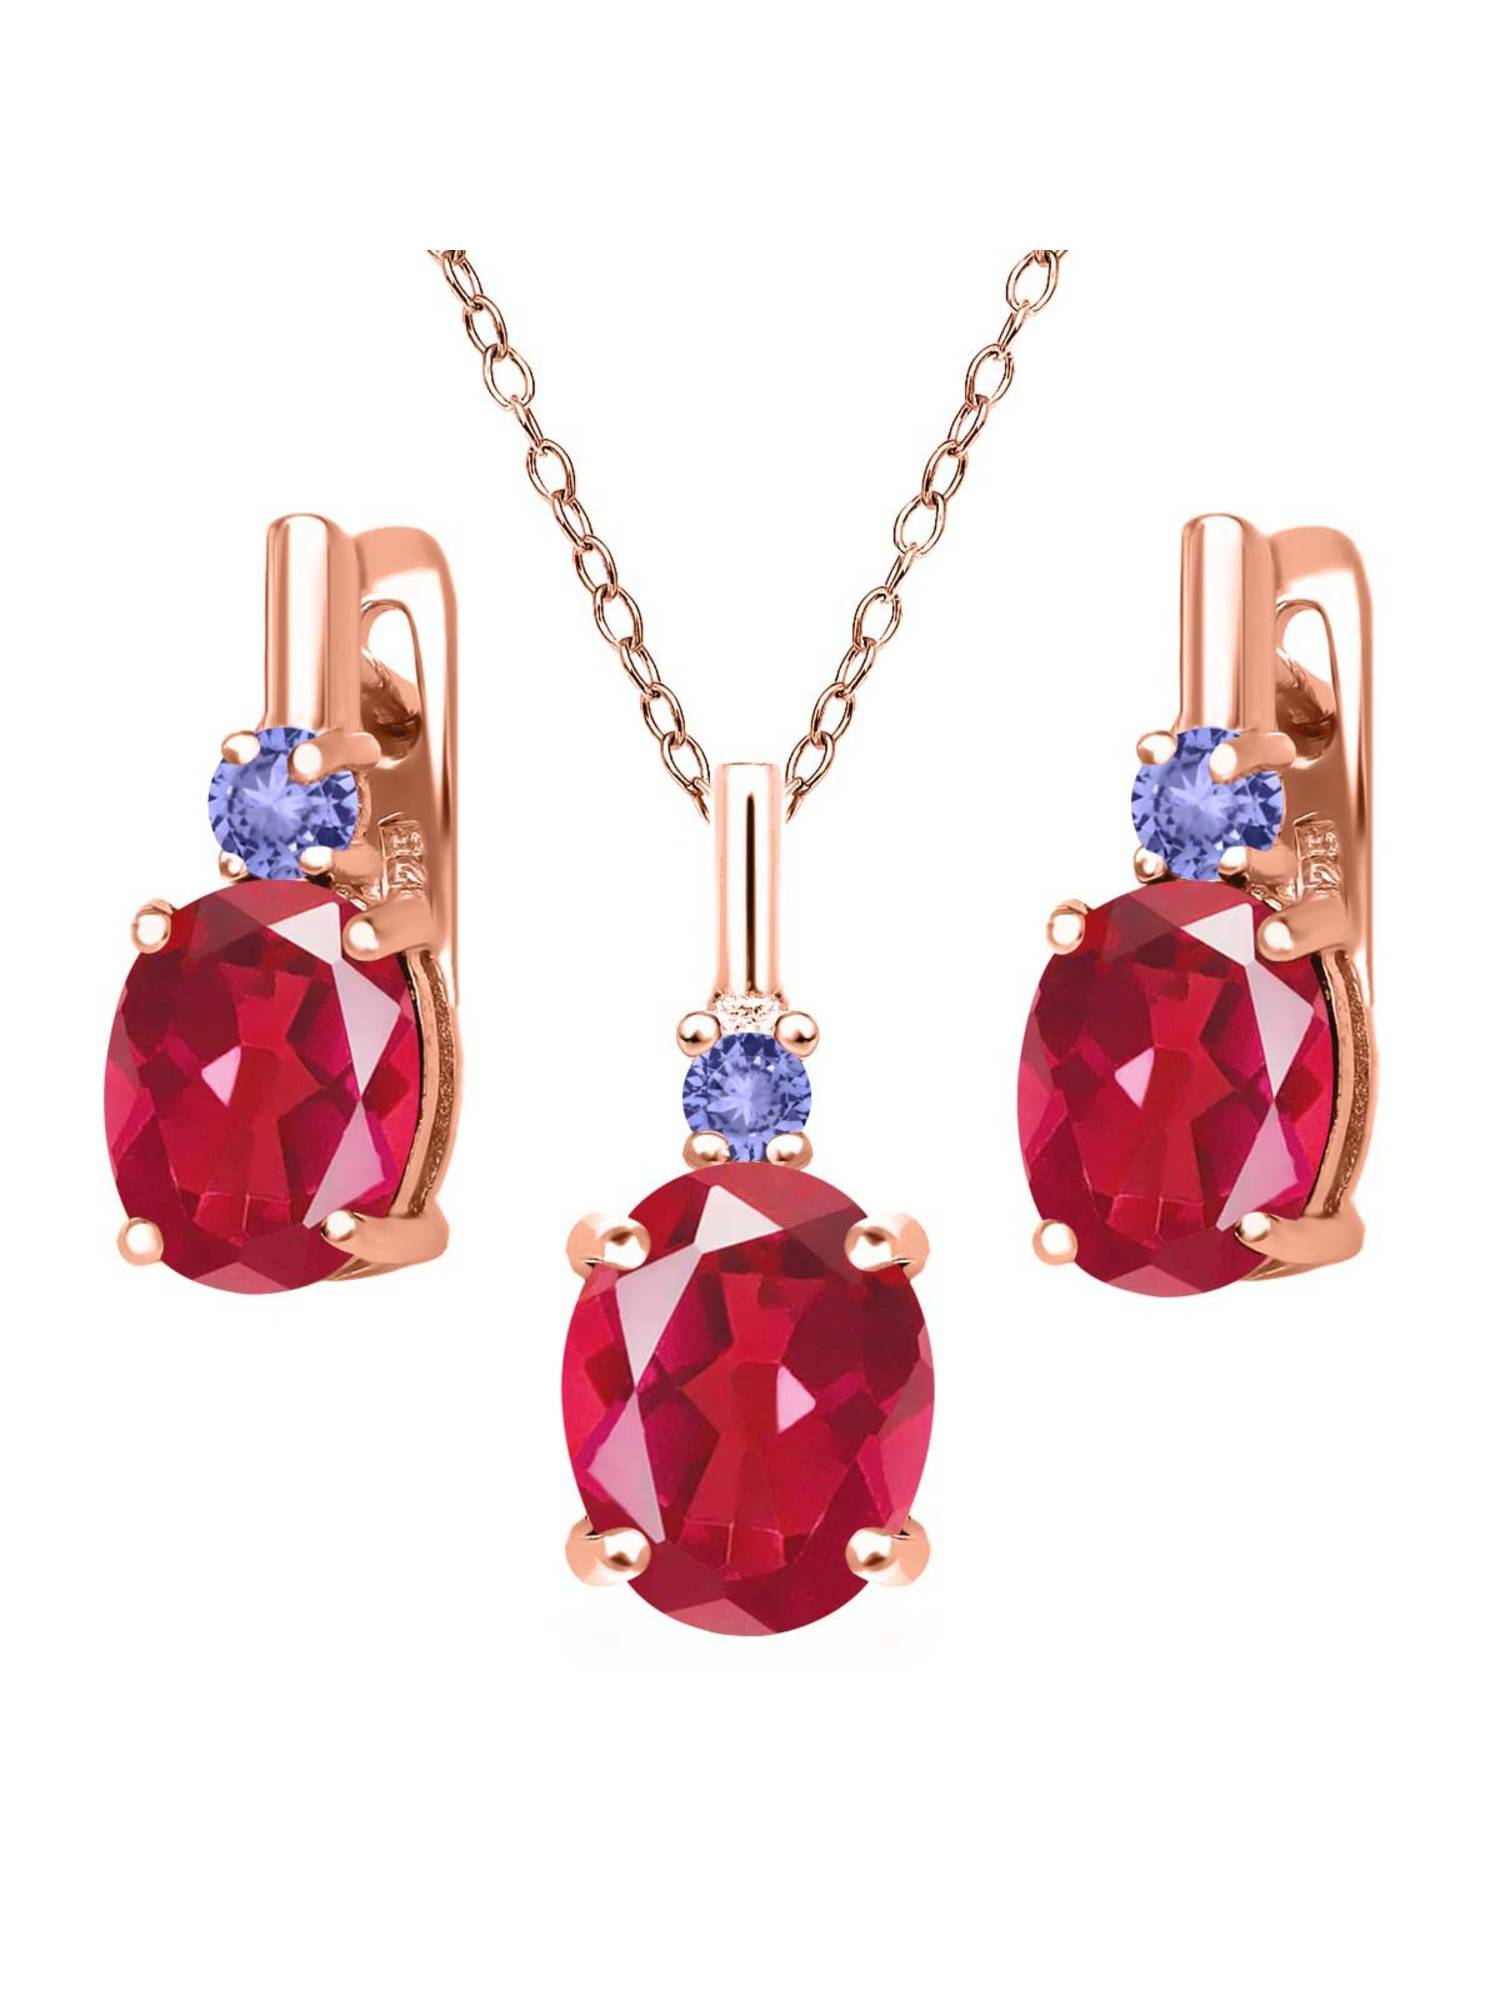 6.98 Ct Last Dance Pink Mystic Quartz Blue Tanzanite 18K Rose Gold Plated Silver Pendant Earrings Set by